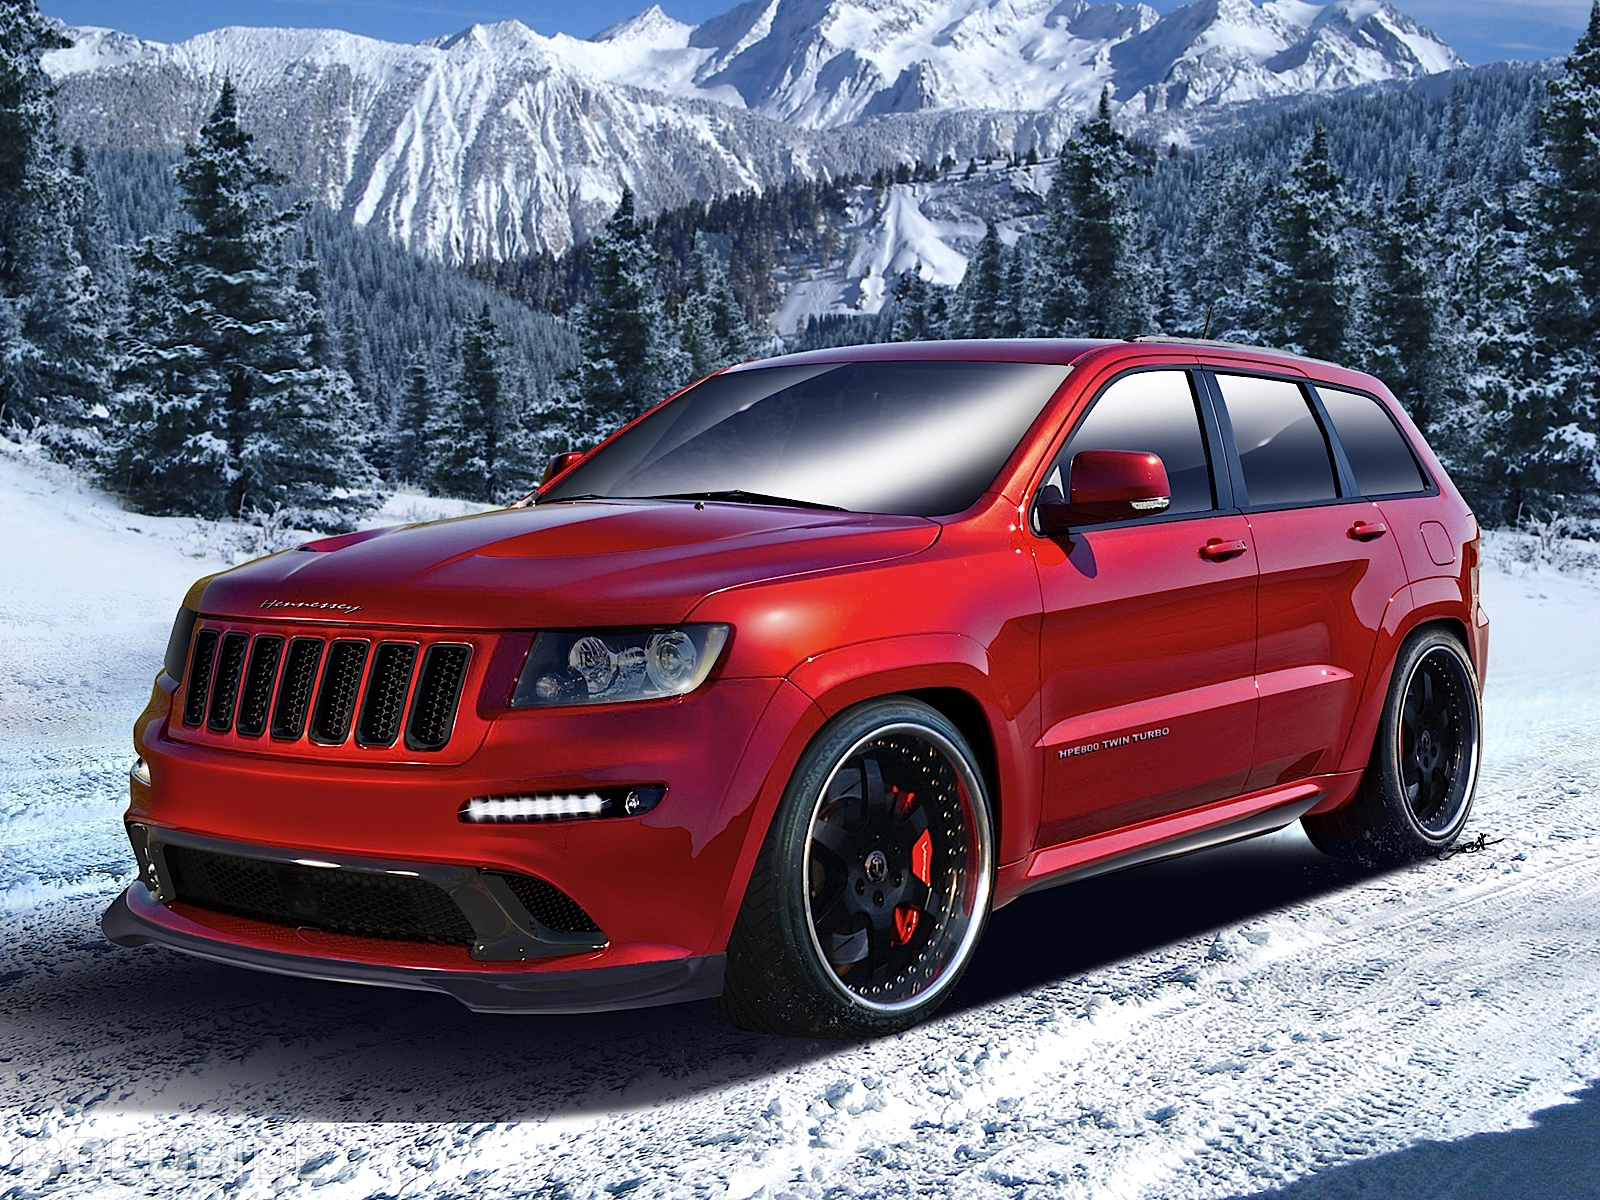 Ford Jeep 2013 photo - 4